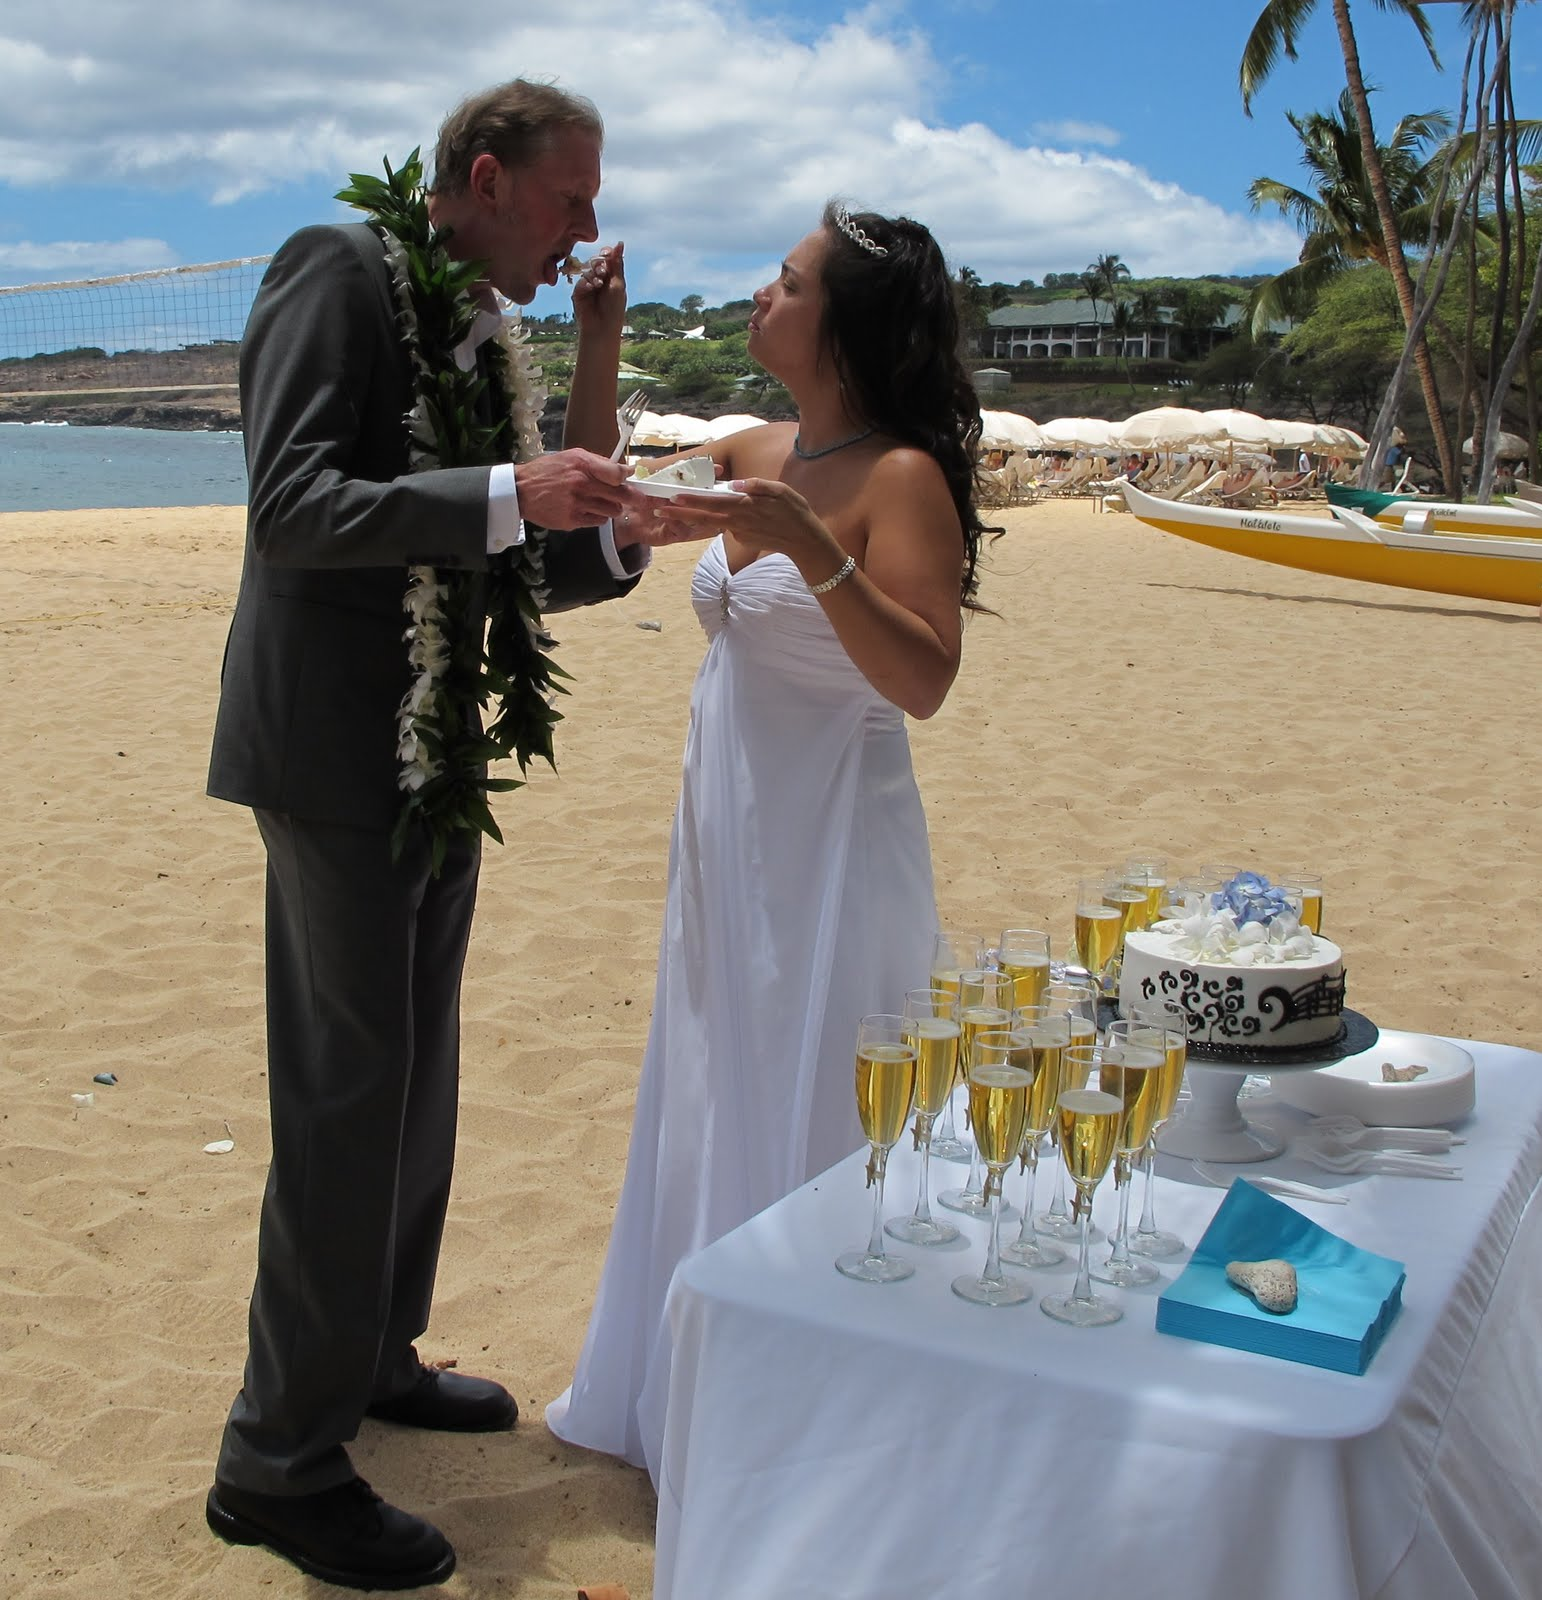 Beach Wedding Ceremony Playlist: Hawaiian Island Wedding Planners: Lanai Wedding Ceremony